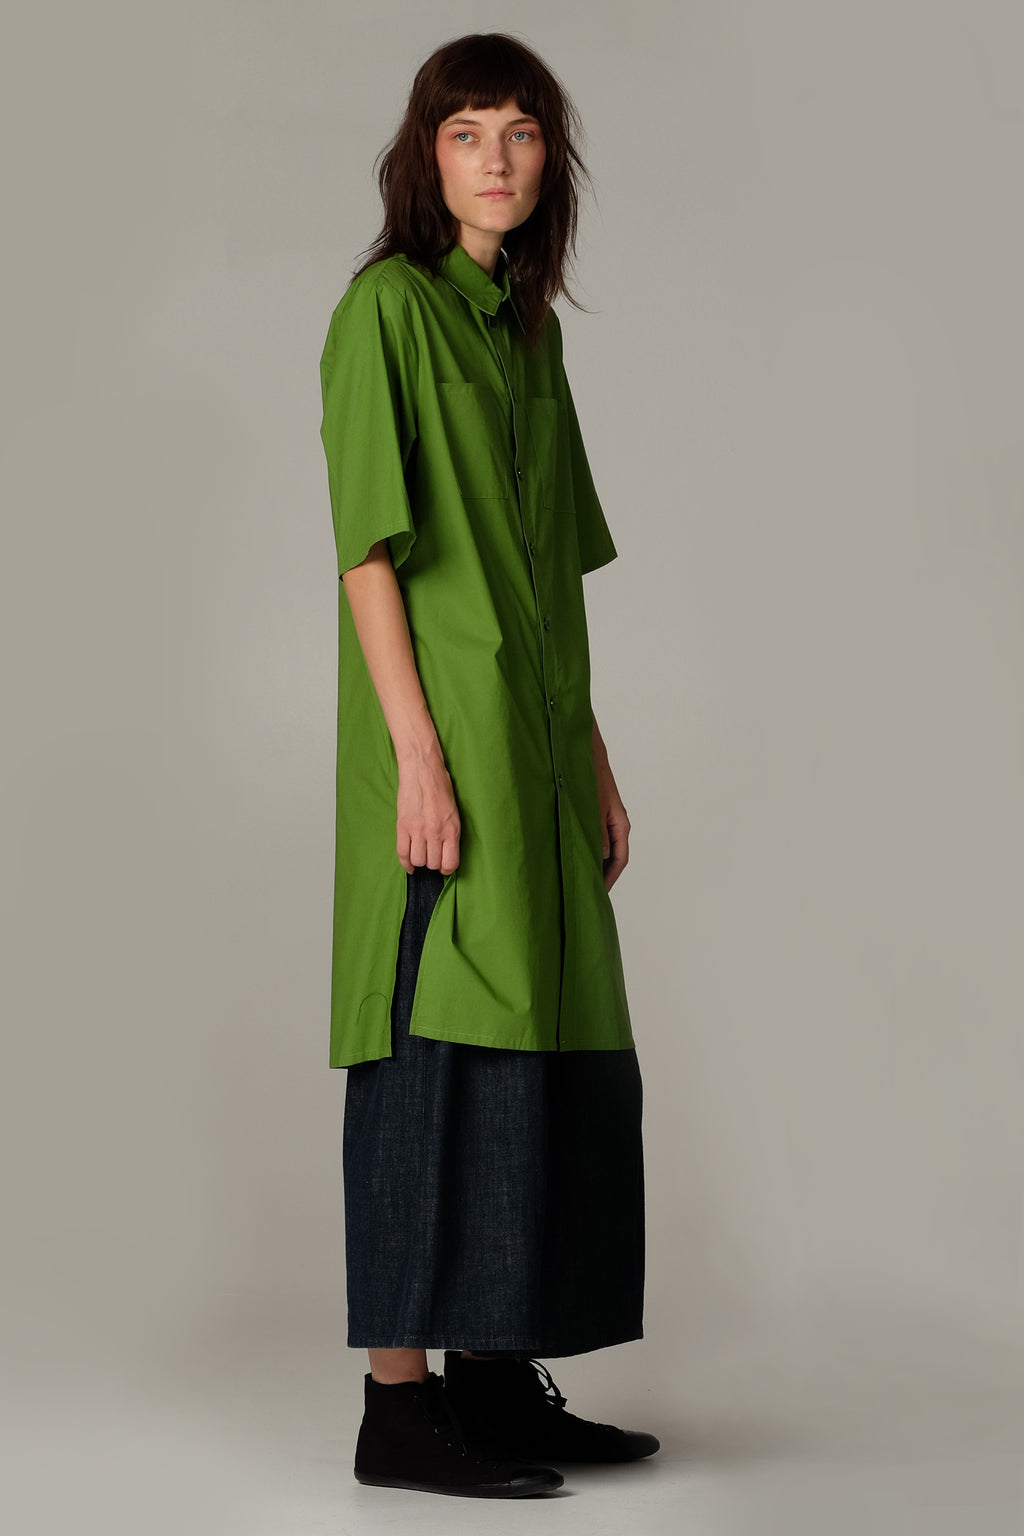 OUTSIDER dress - Plant green - One Wolf